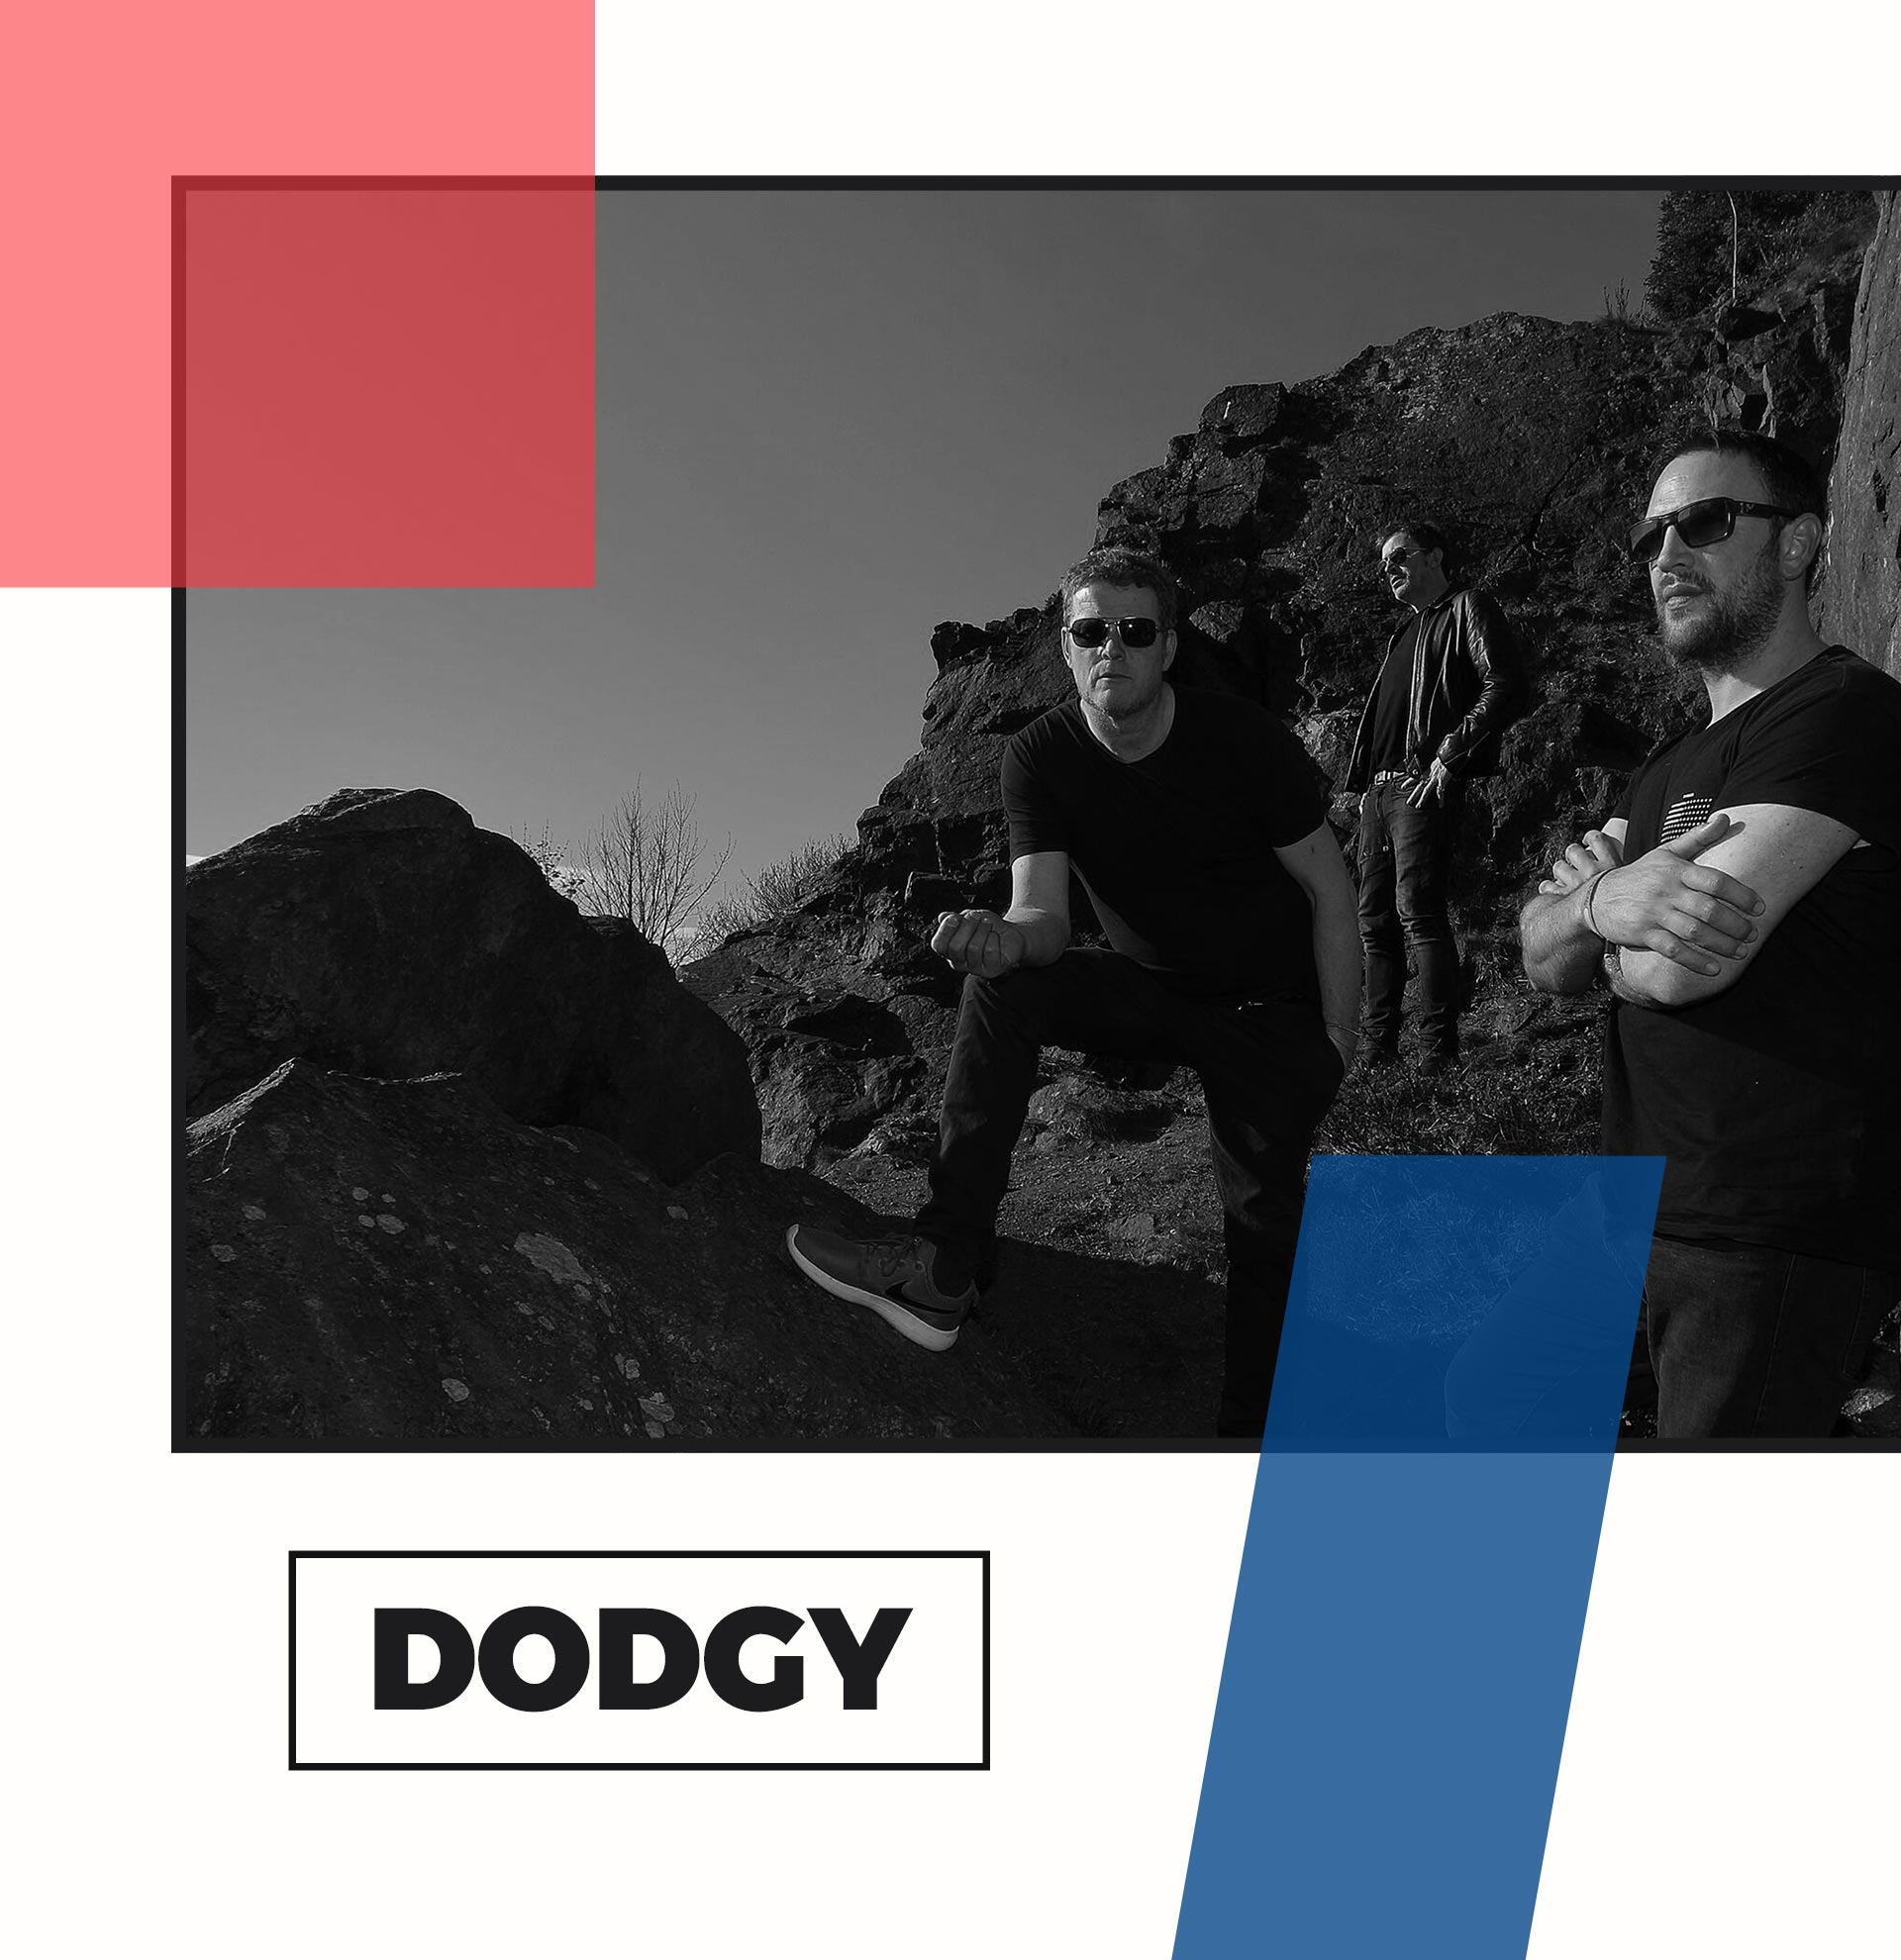 Copy of Dodgy